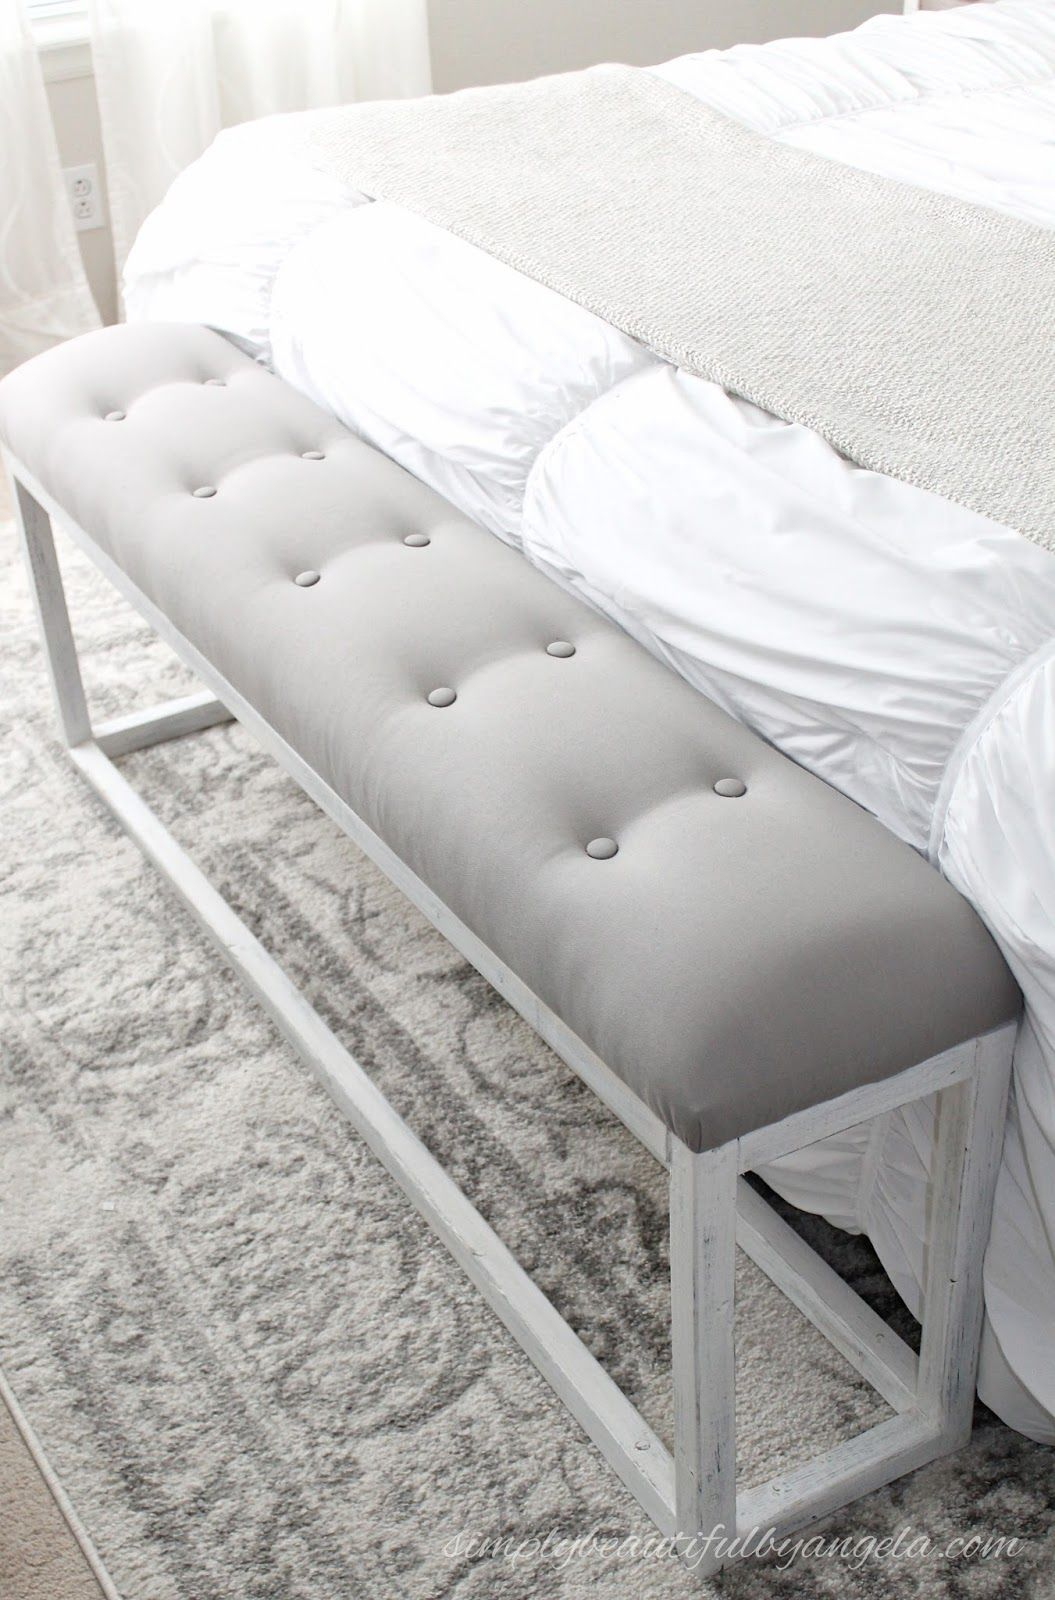 DIY Simple End of Bed Bench | Crazy for DIY | End of bed bench